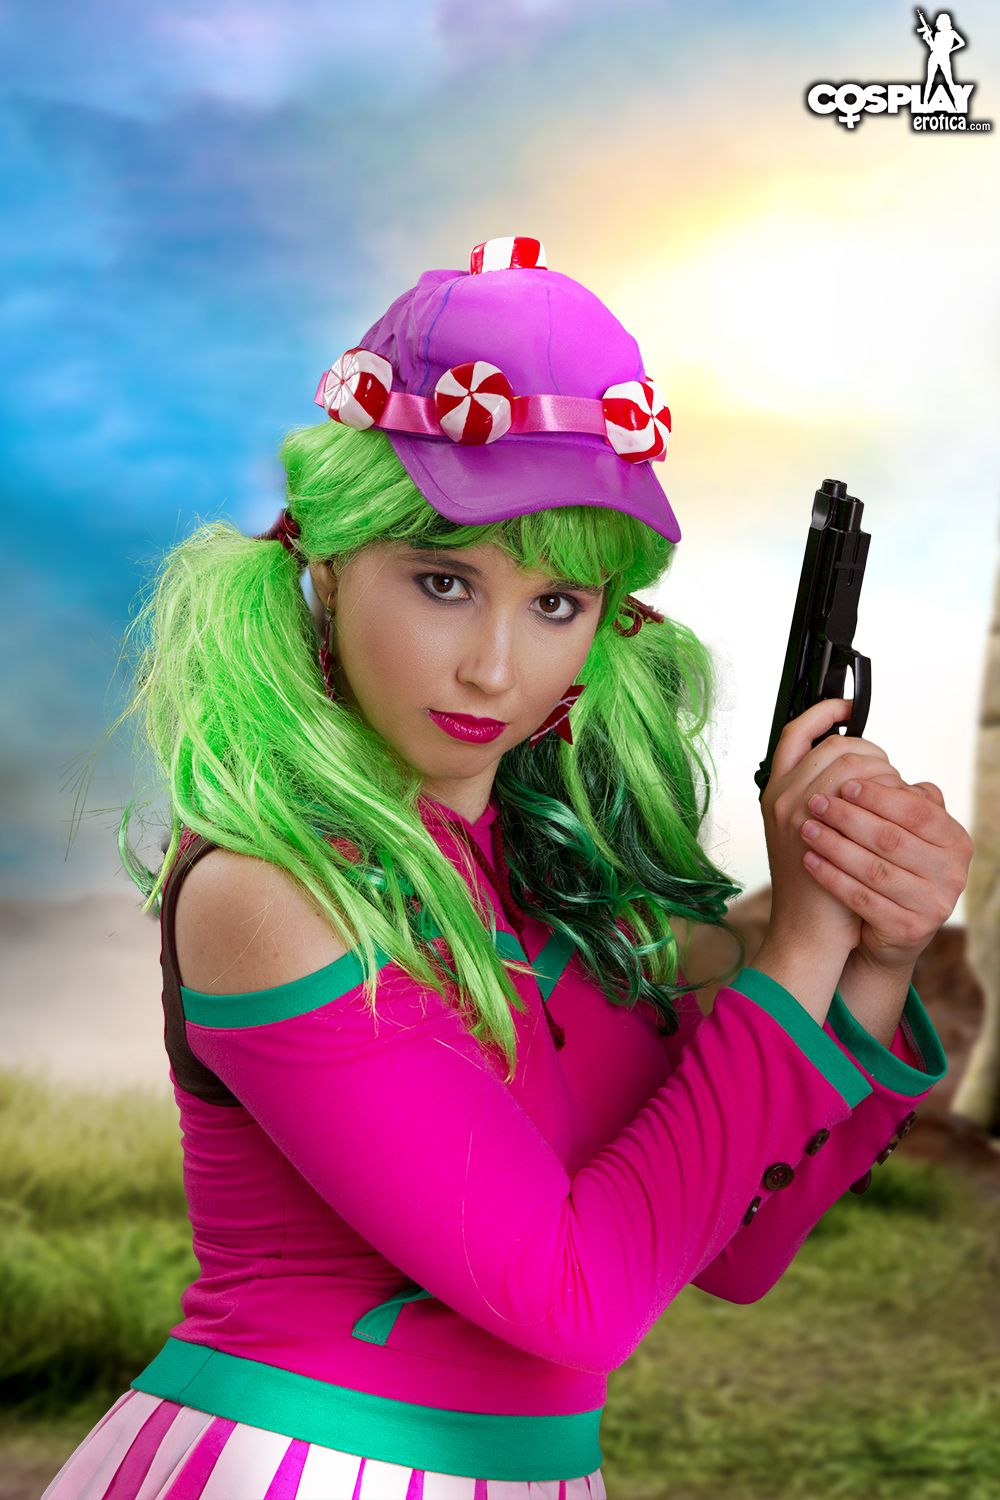 Cosplay Erotica's Stacy Goes Hunting As Zoey From Fortnite